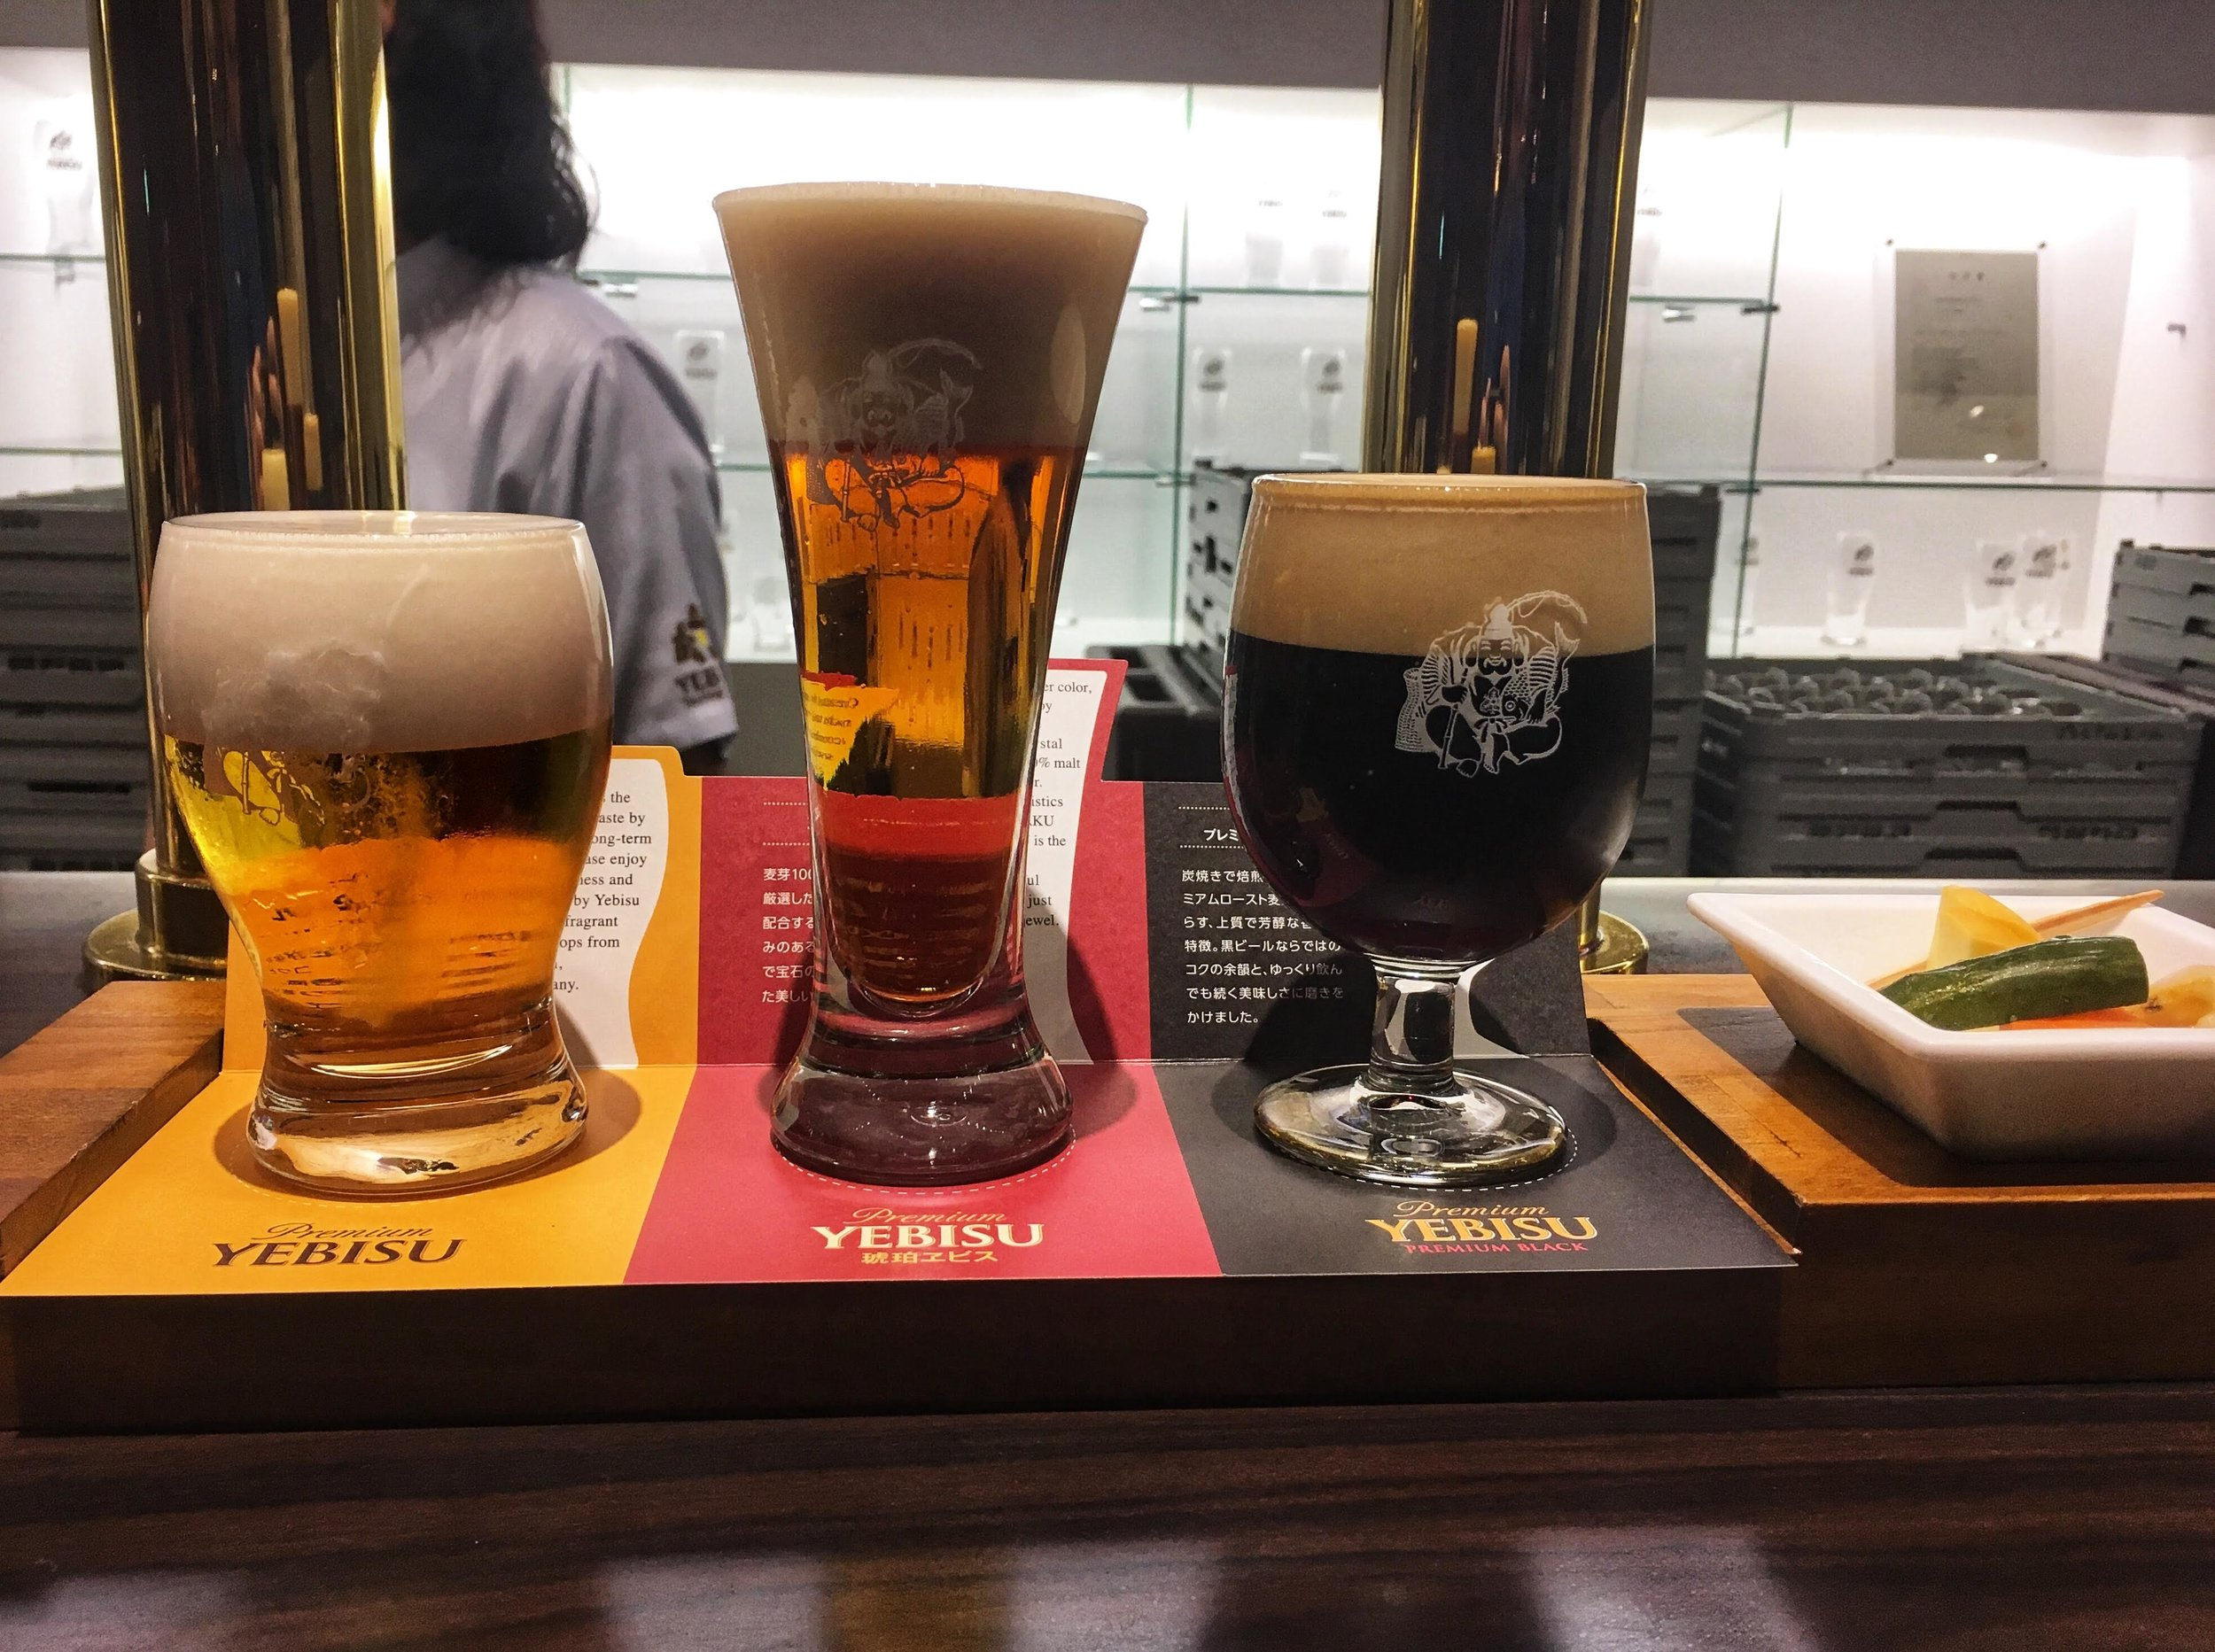 tasting set of three types of Yebisu Beer: Original, Red, and Dark